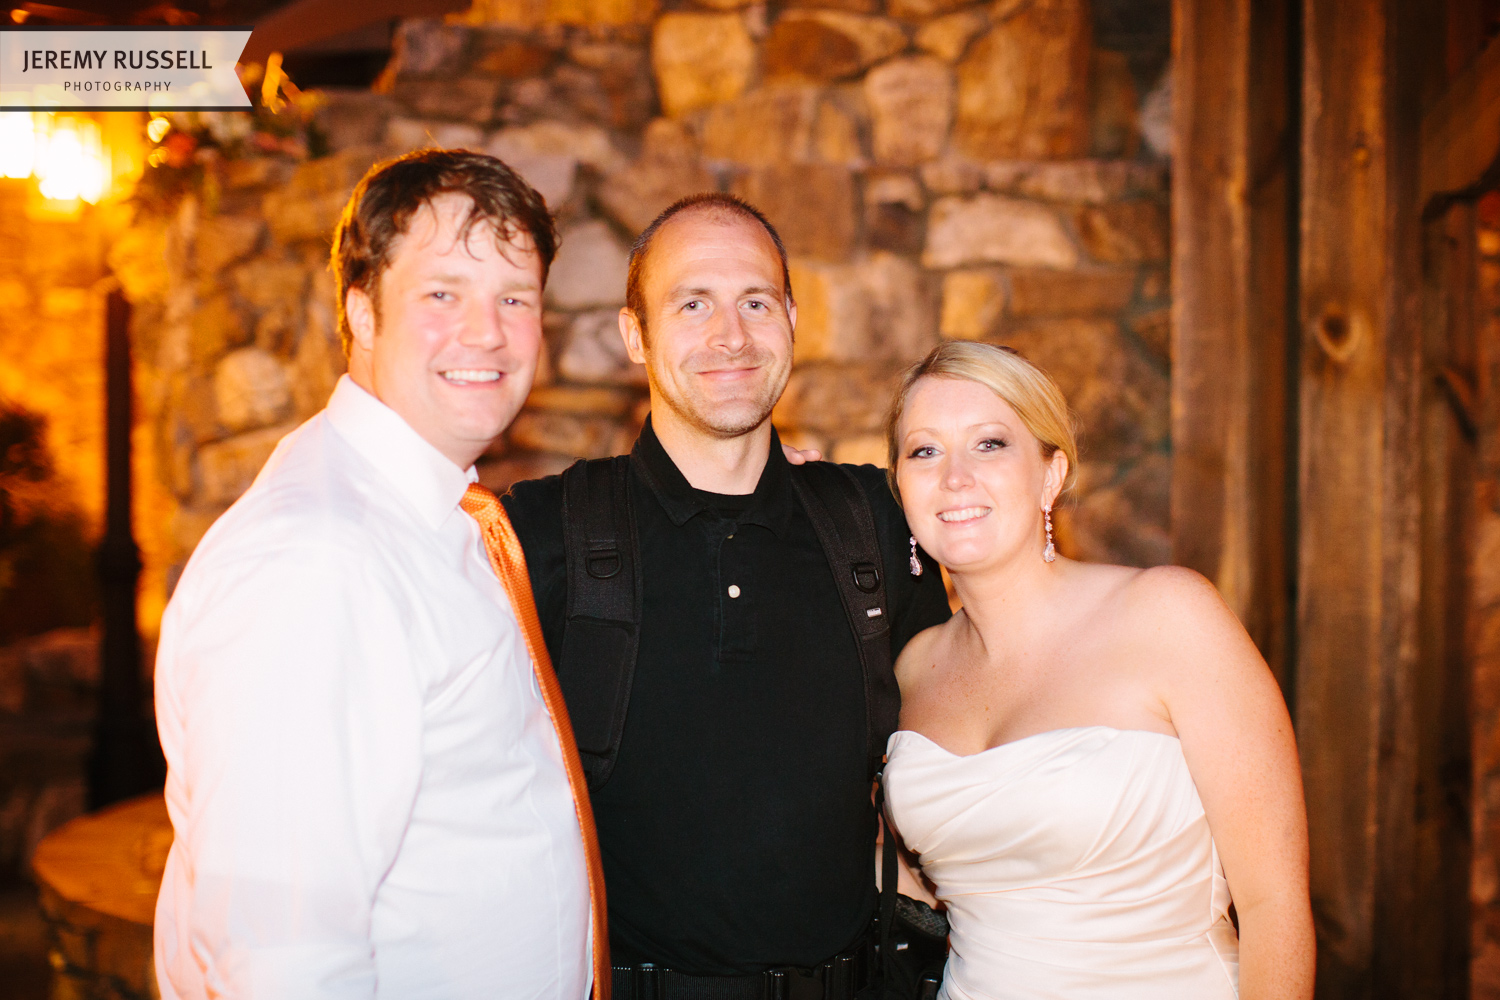 Bride and groom with Jeremy